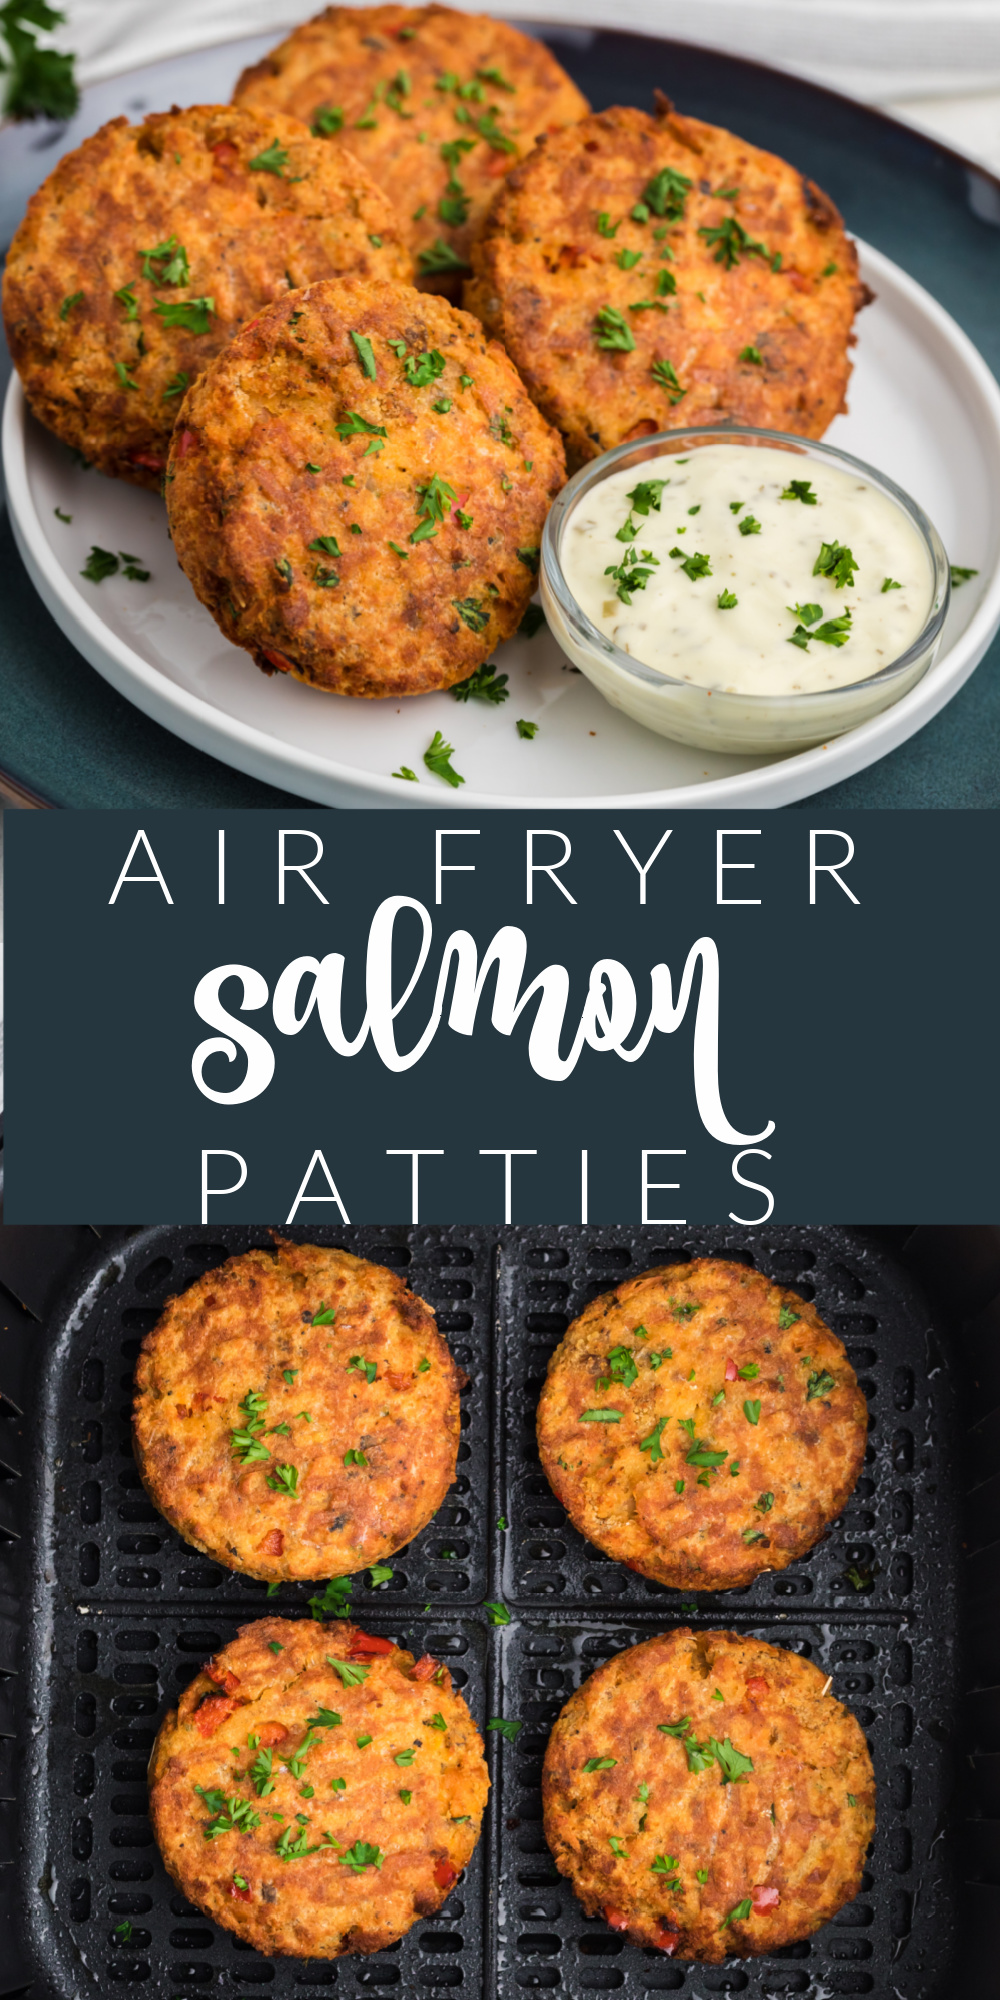 Air Fryer Salmon Patties are made with salmon, mayo, breadcrumbs, bell pepper, seasonings, and more. It's a delicious and easy air fryer recipe that's made in just minutes!